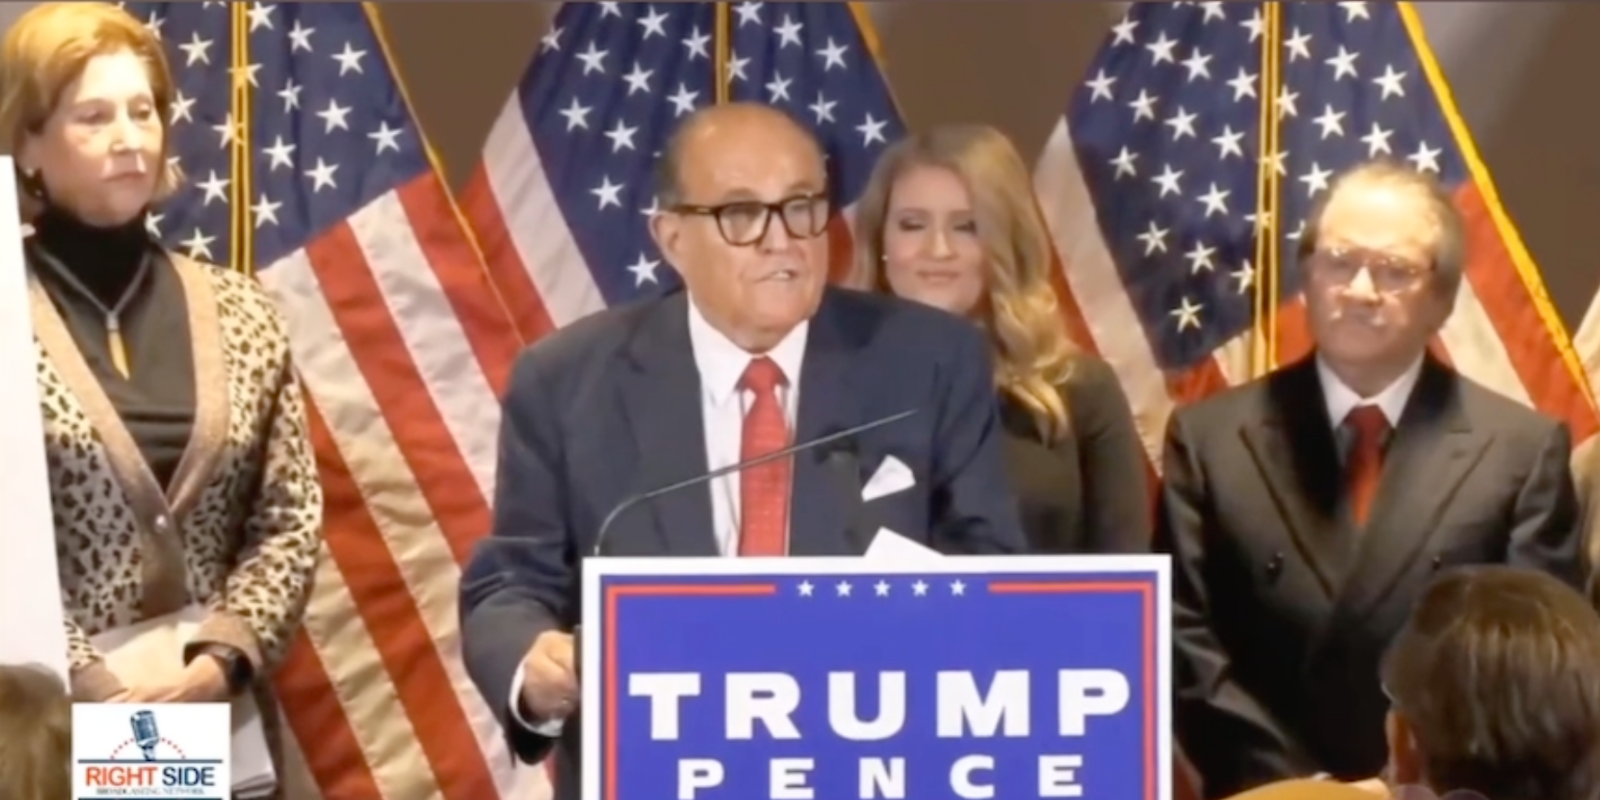 BREAKING: Trump lawyers allege massive fraud in major press conference